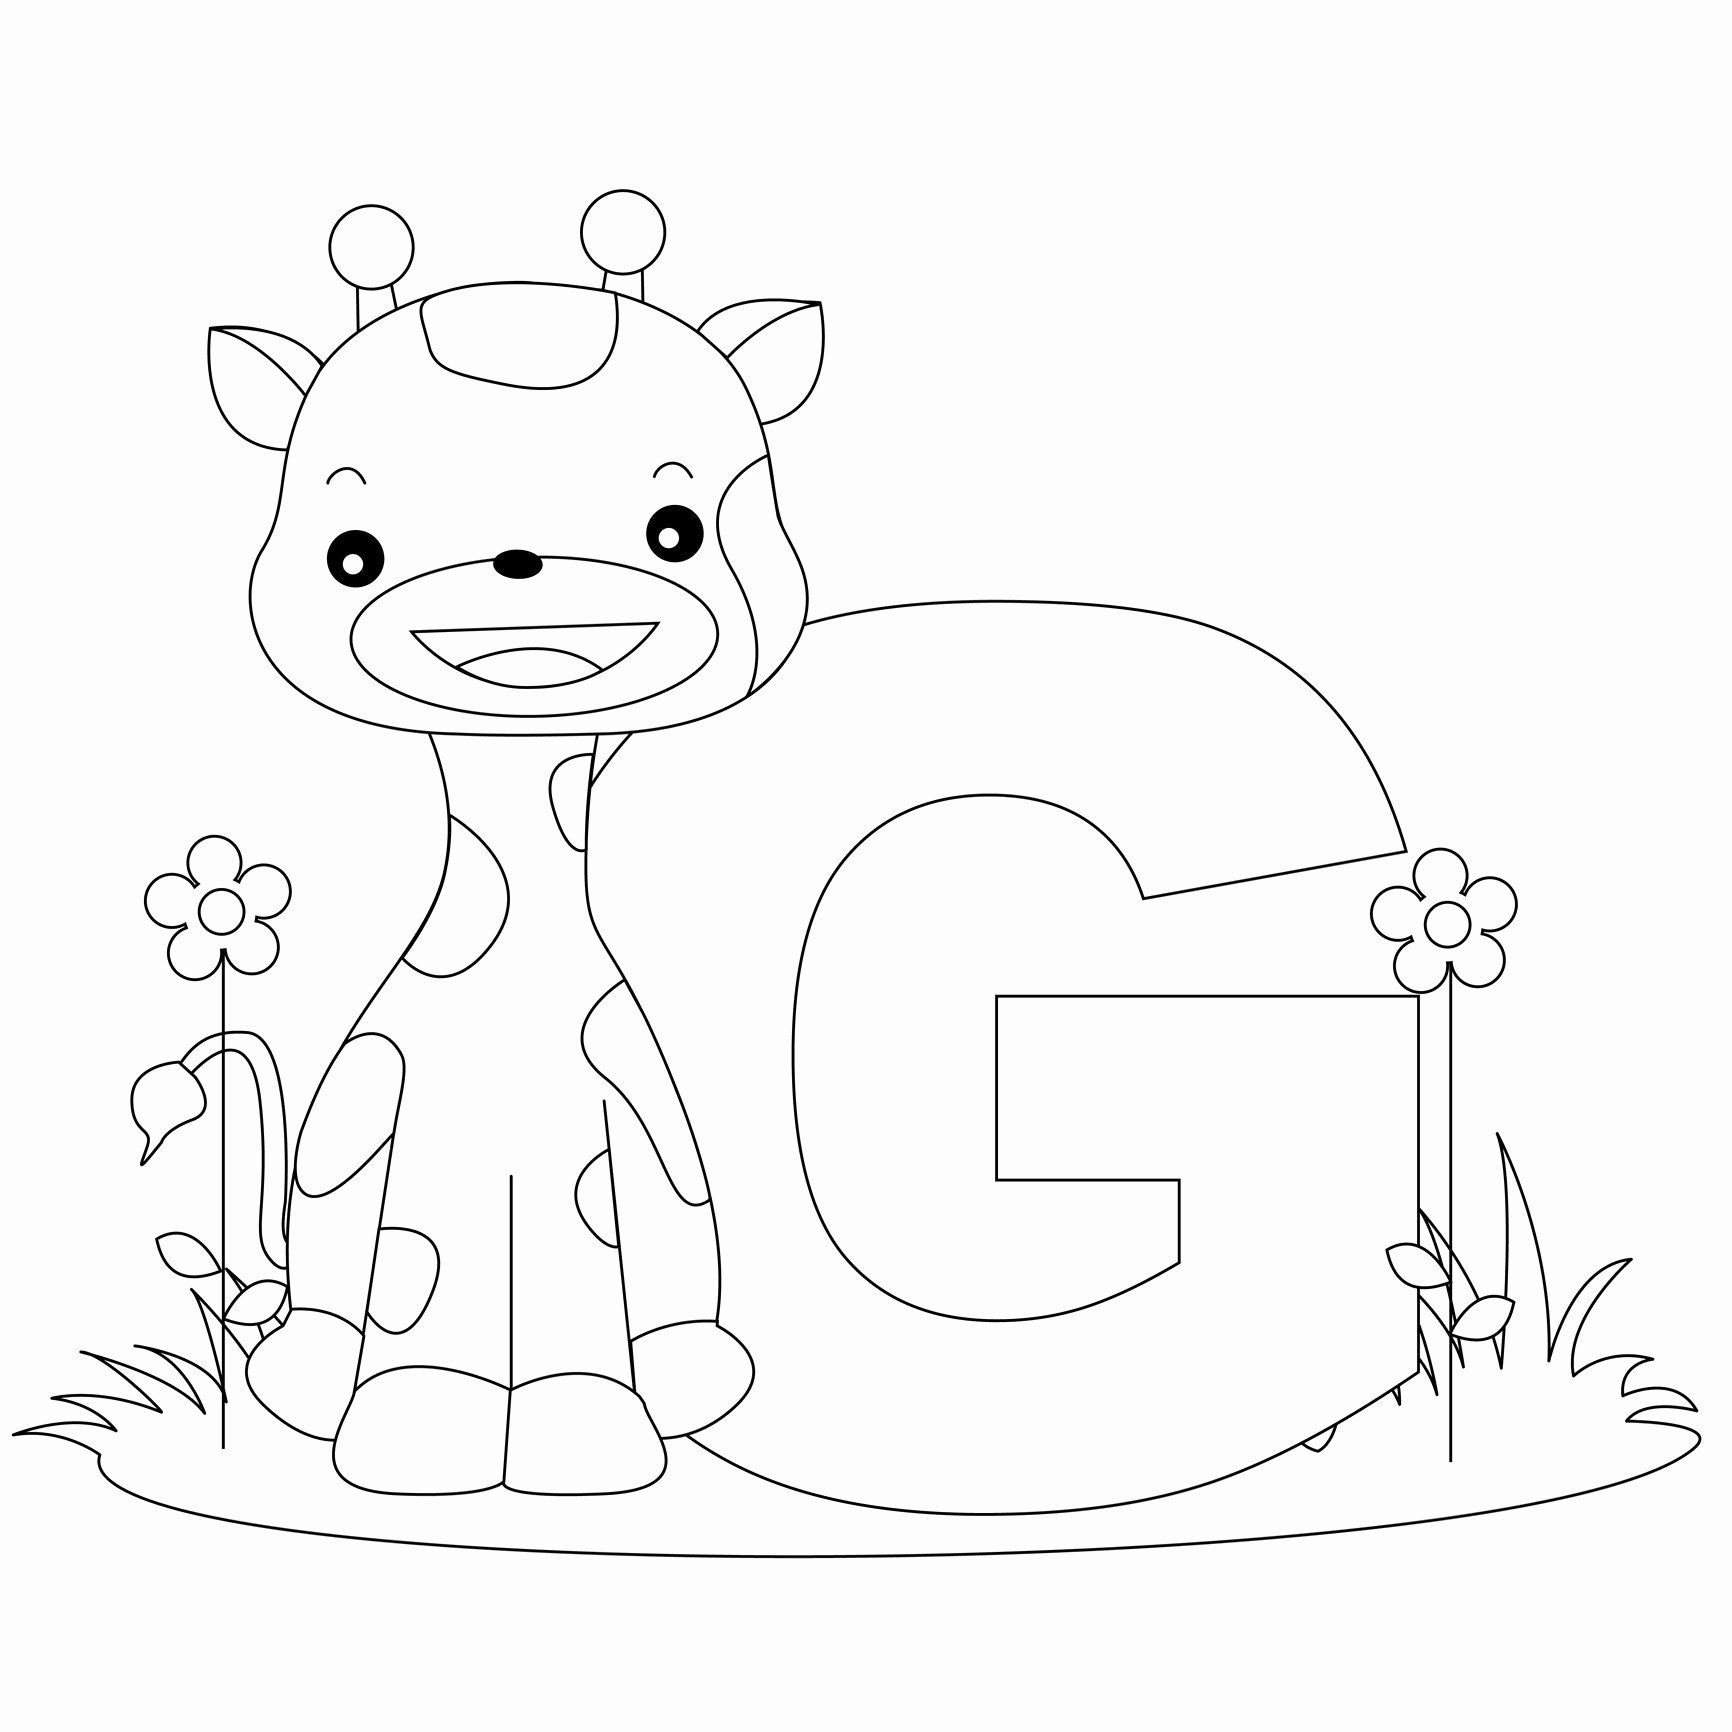 Alphabet Letters Coloring Pages Best Of Free Printable